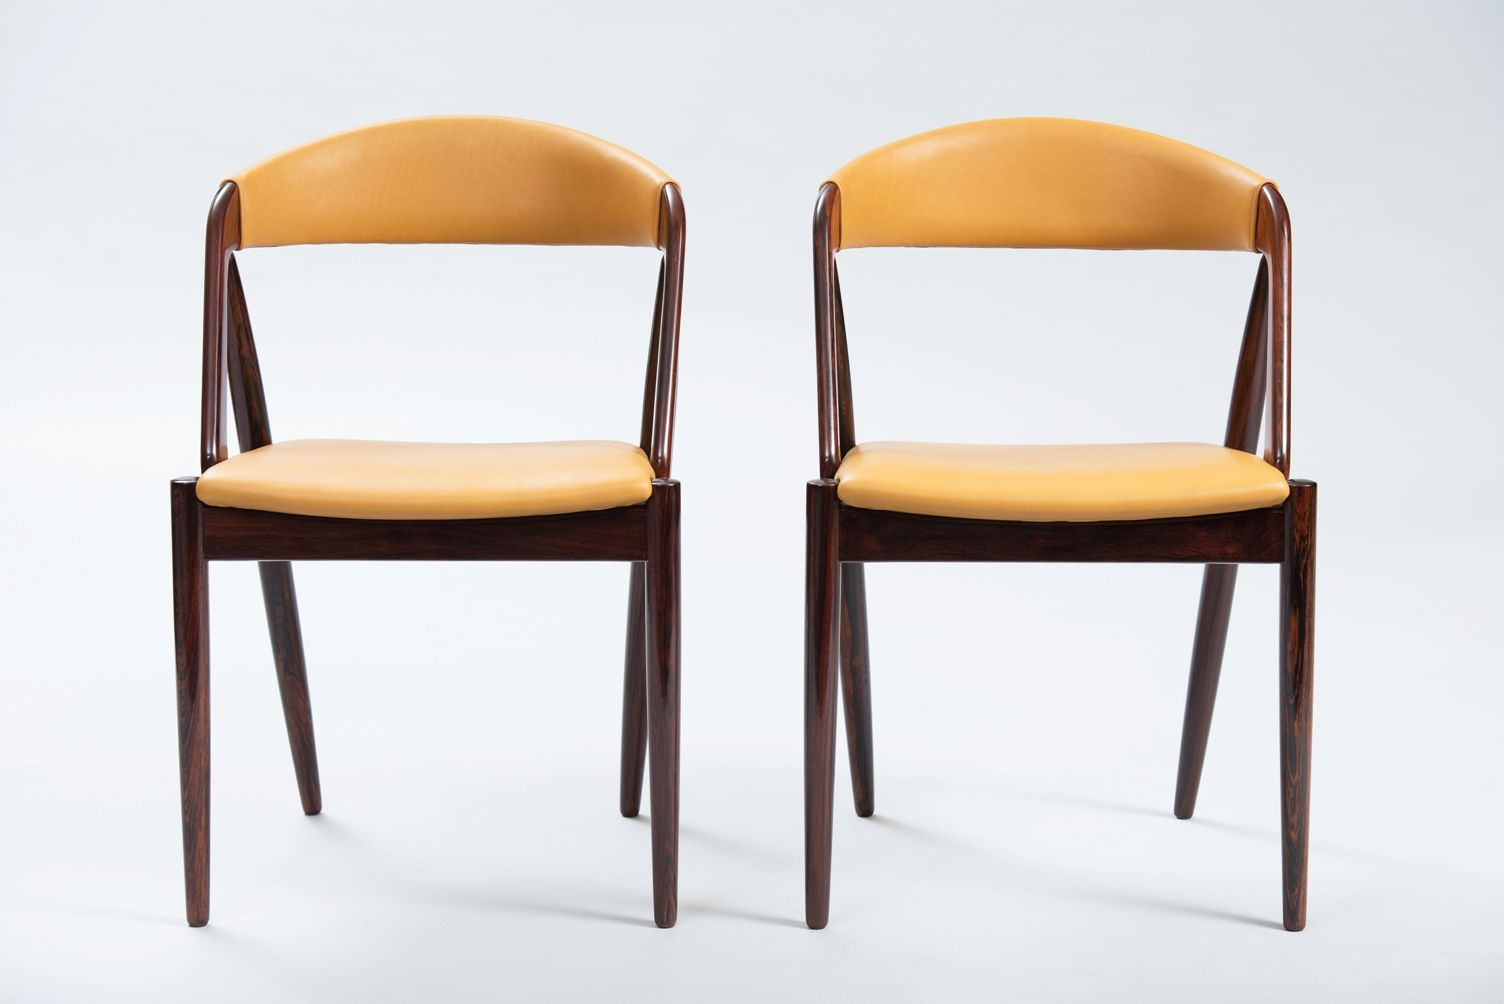 Rosewood chairs by kai kristiansen set of 6 for sale at pamono - Kai kristiansen chairs ...